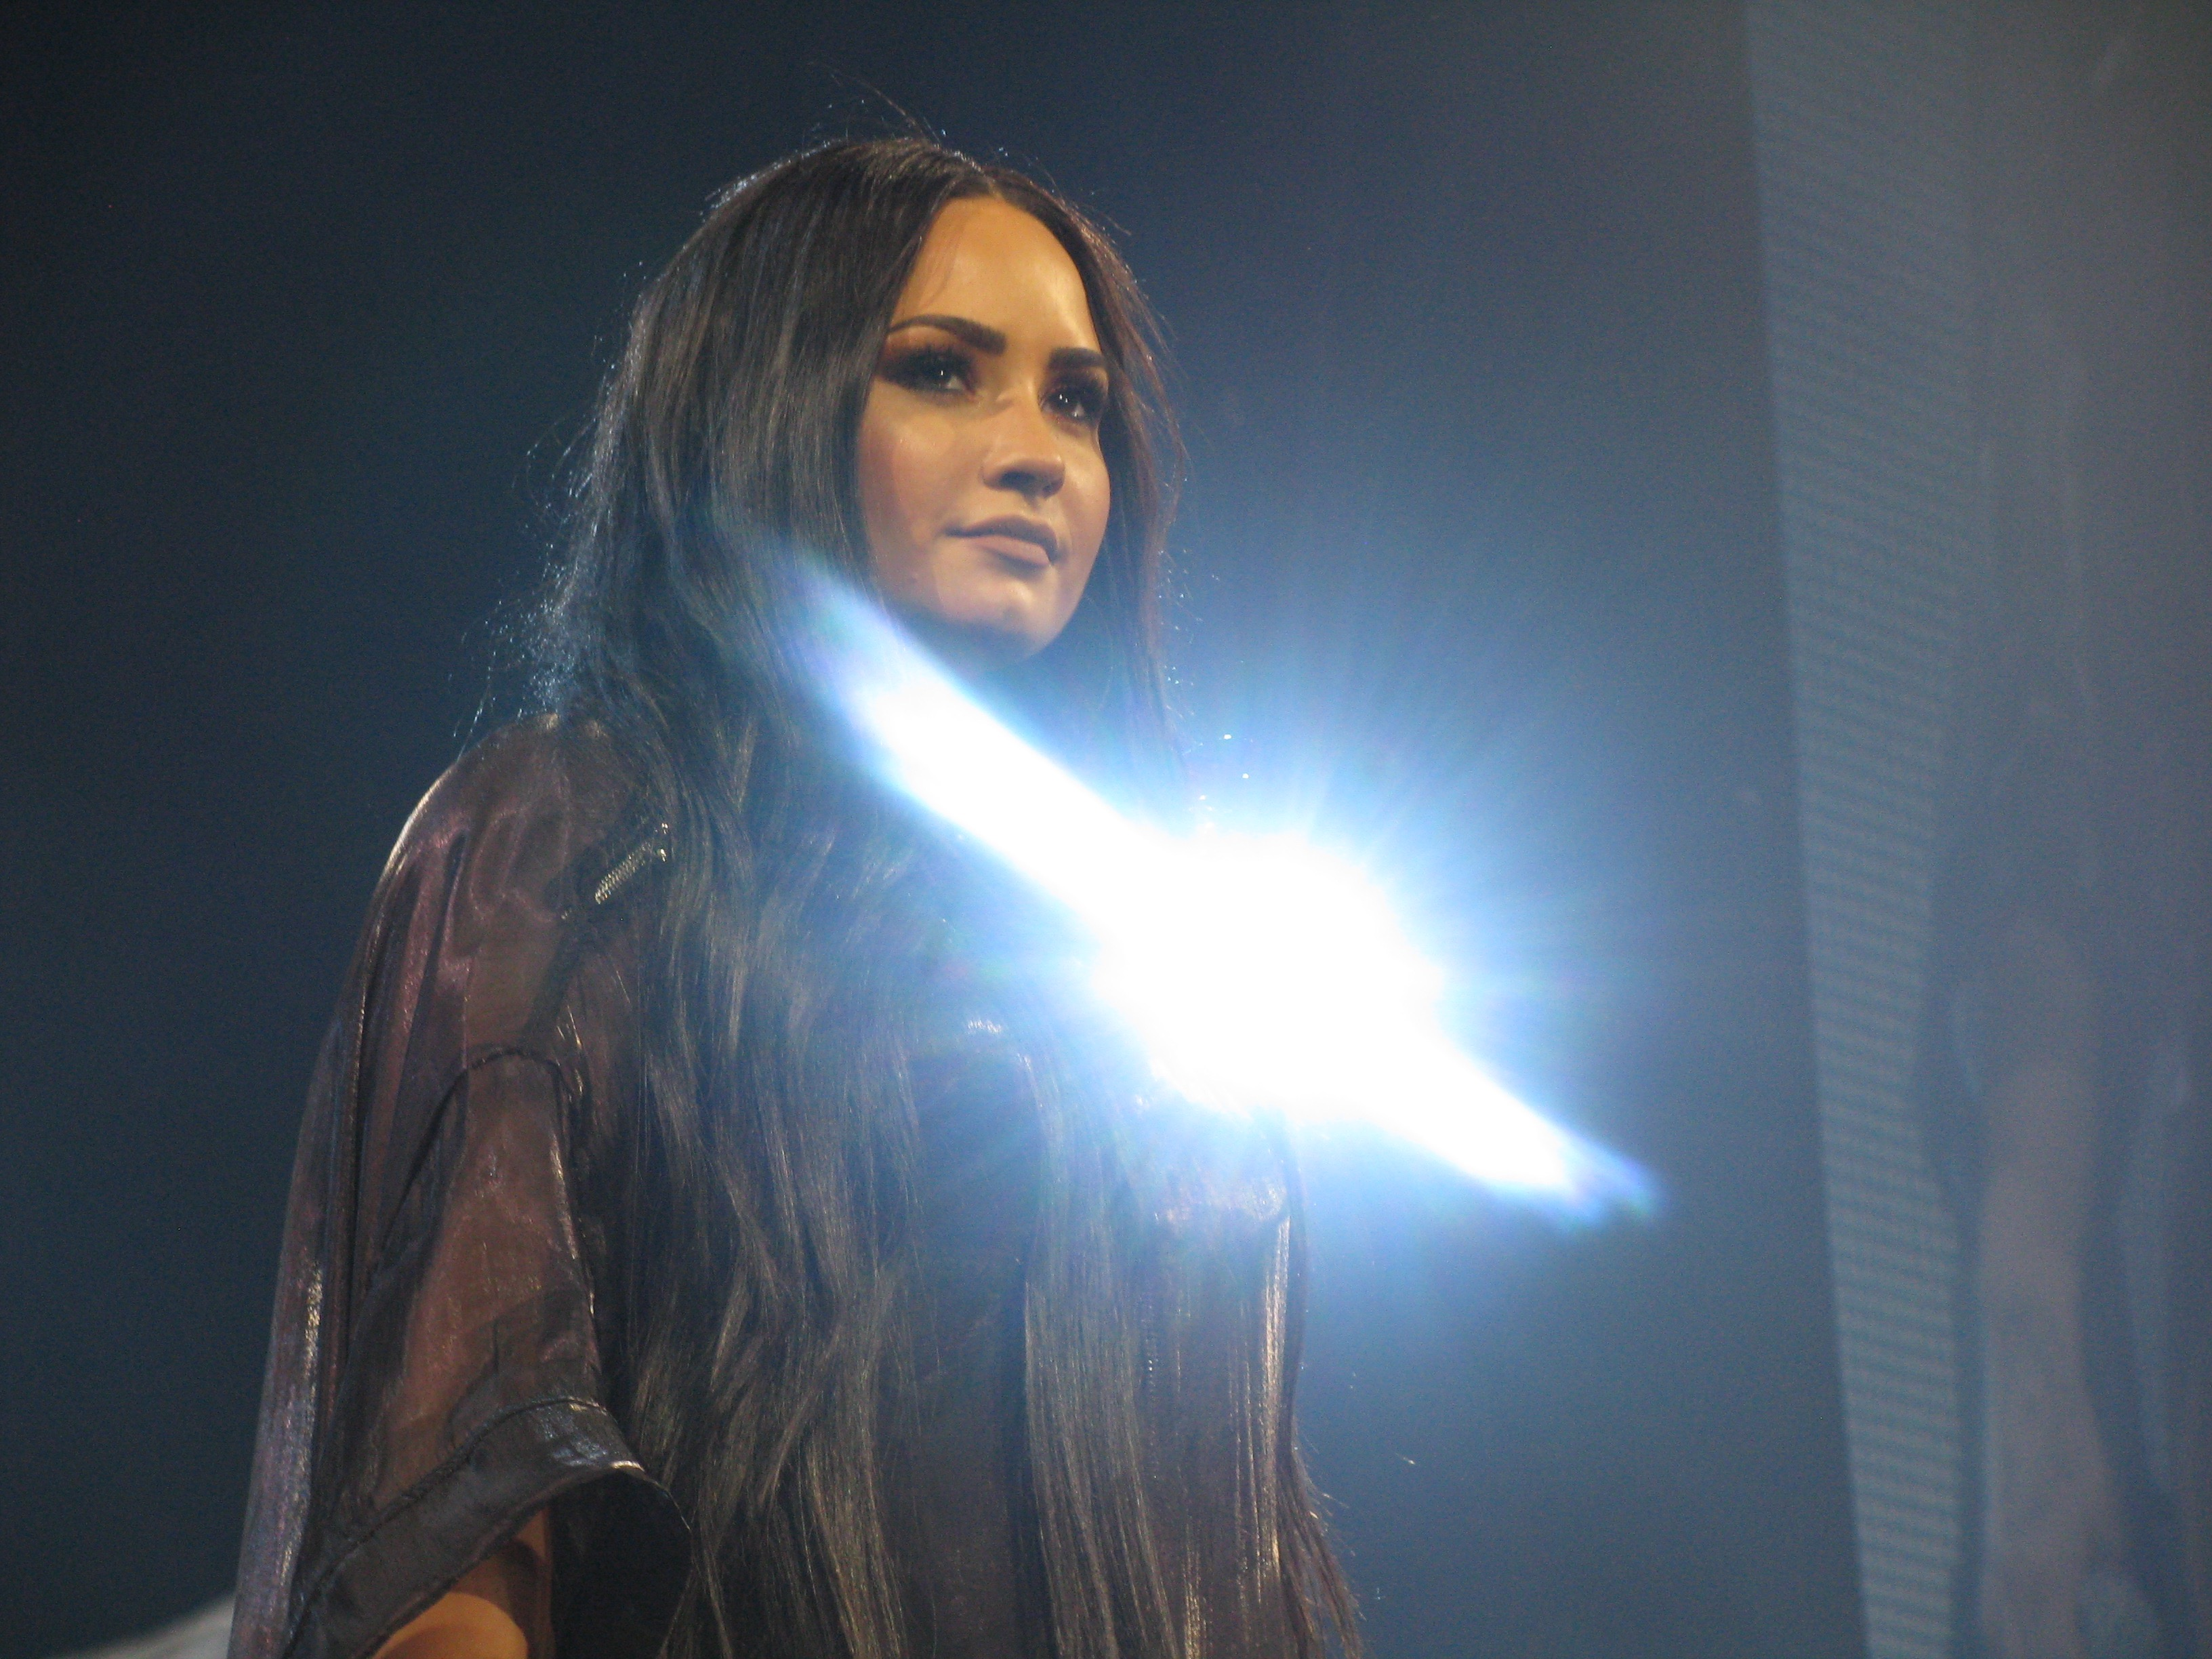 File Demi Lovato Tell Me You Love Me World Tour In The Light Jpg Wikimedia Commons